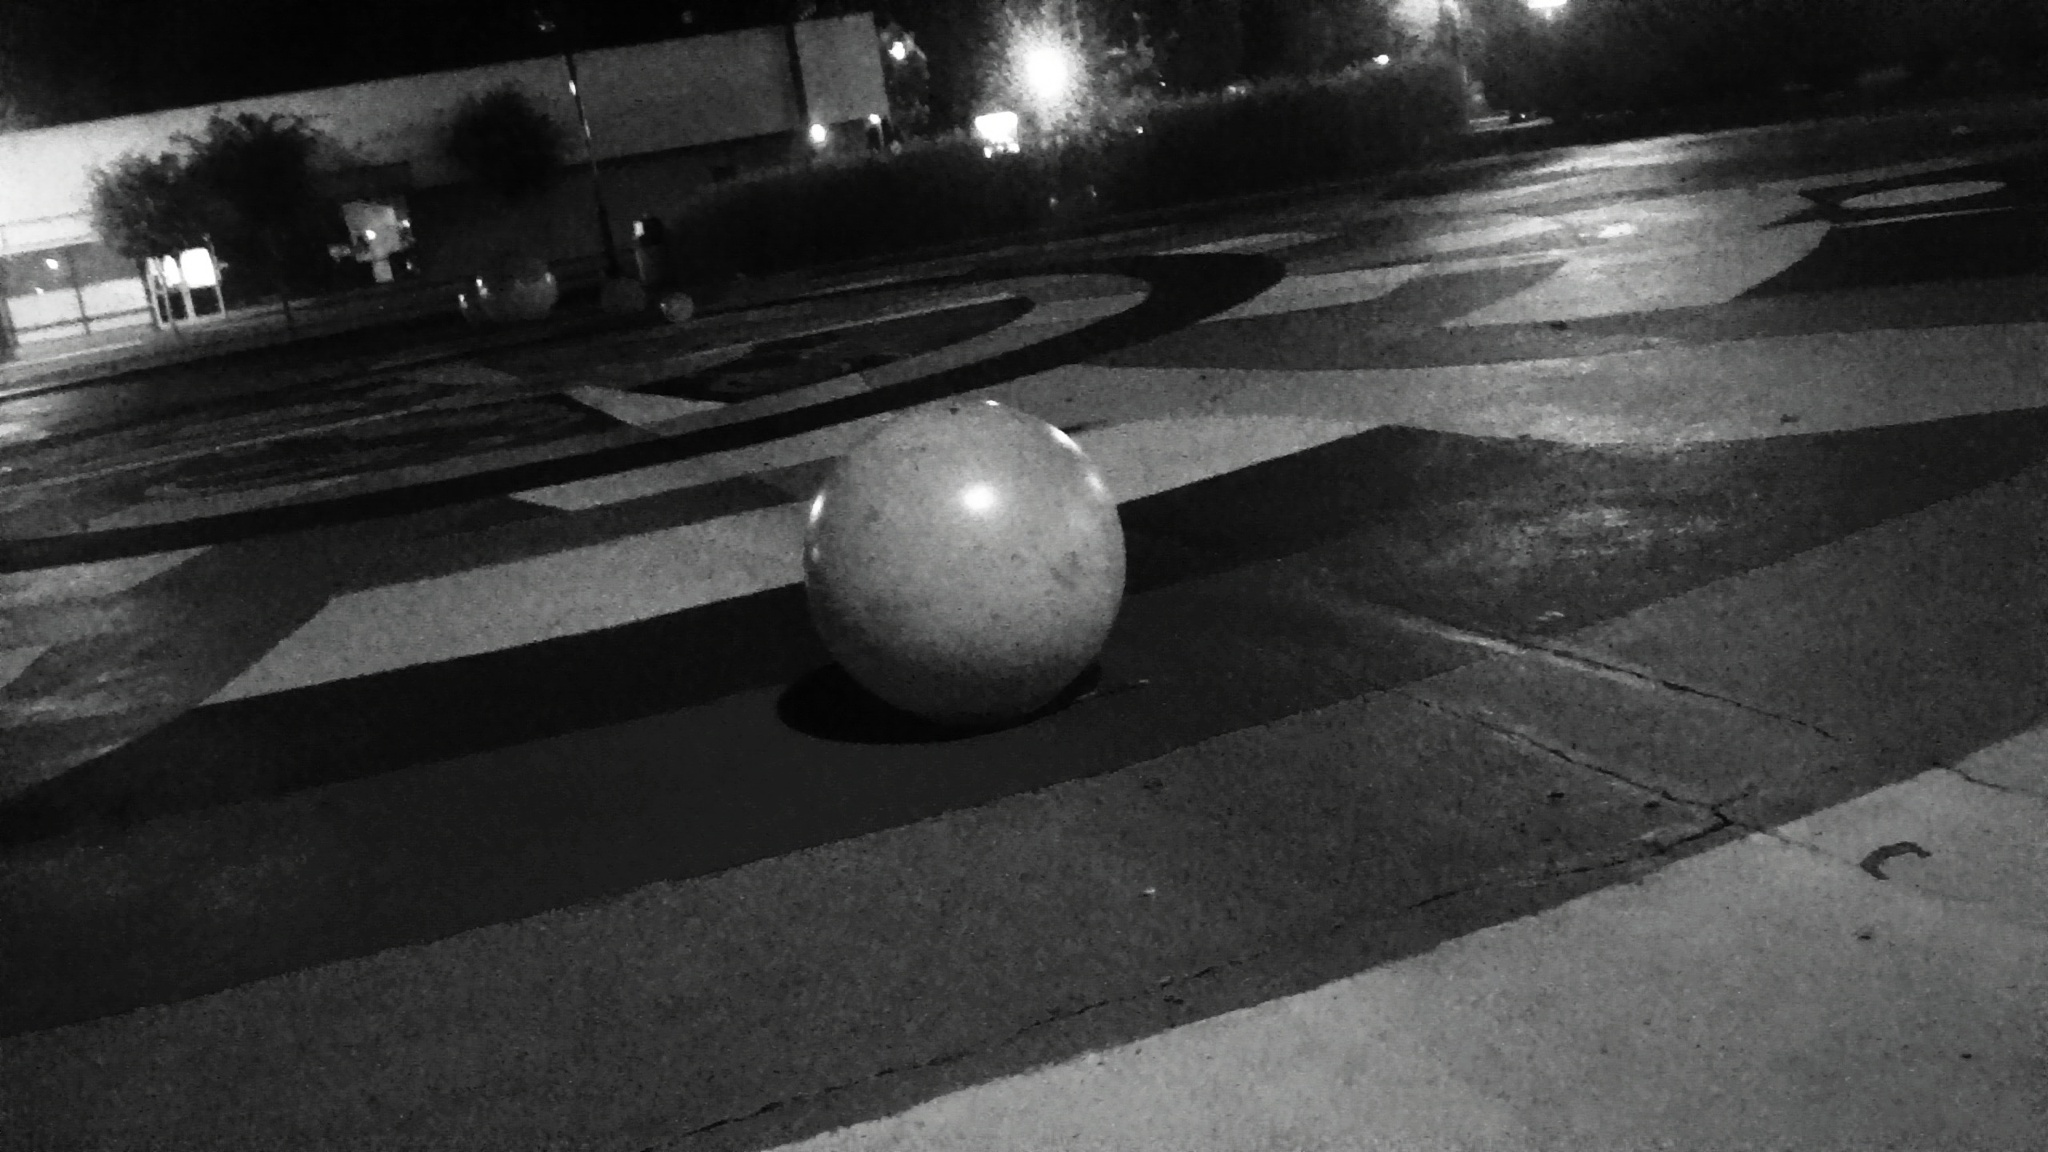 'Concrete Park' by J. Wetmore Photography